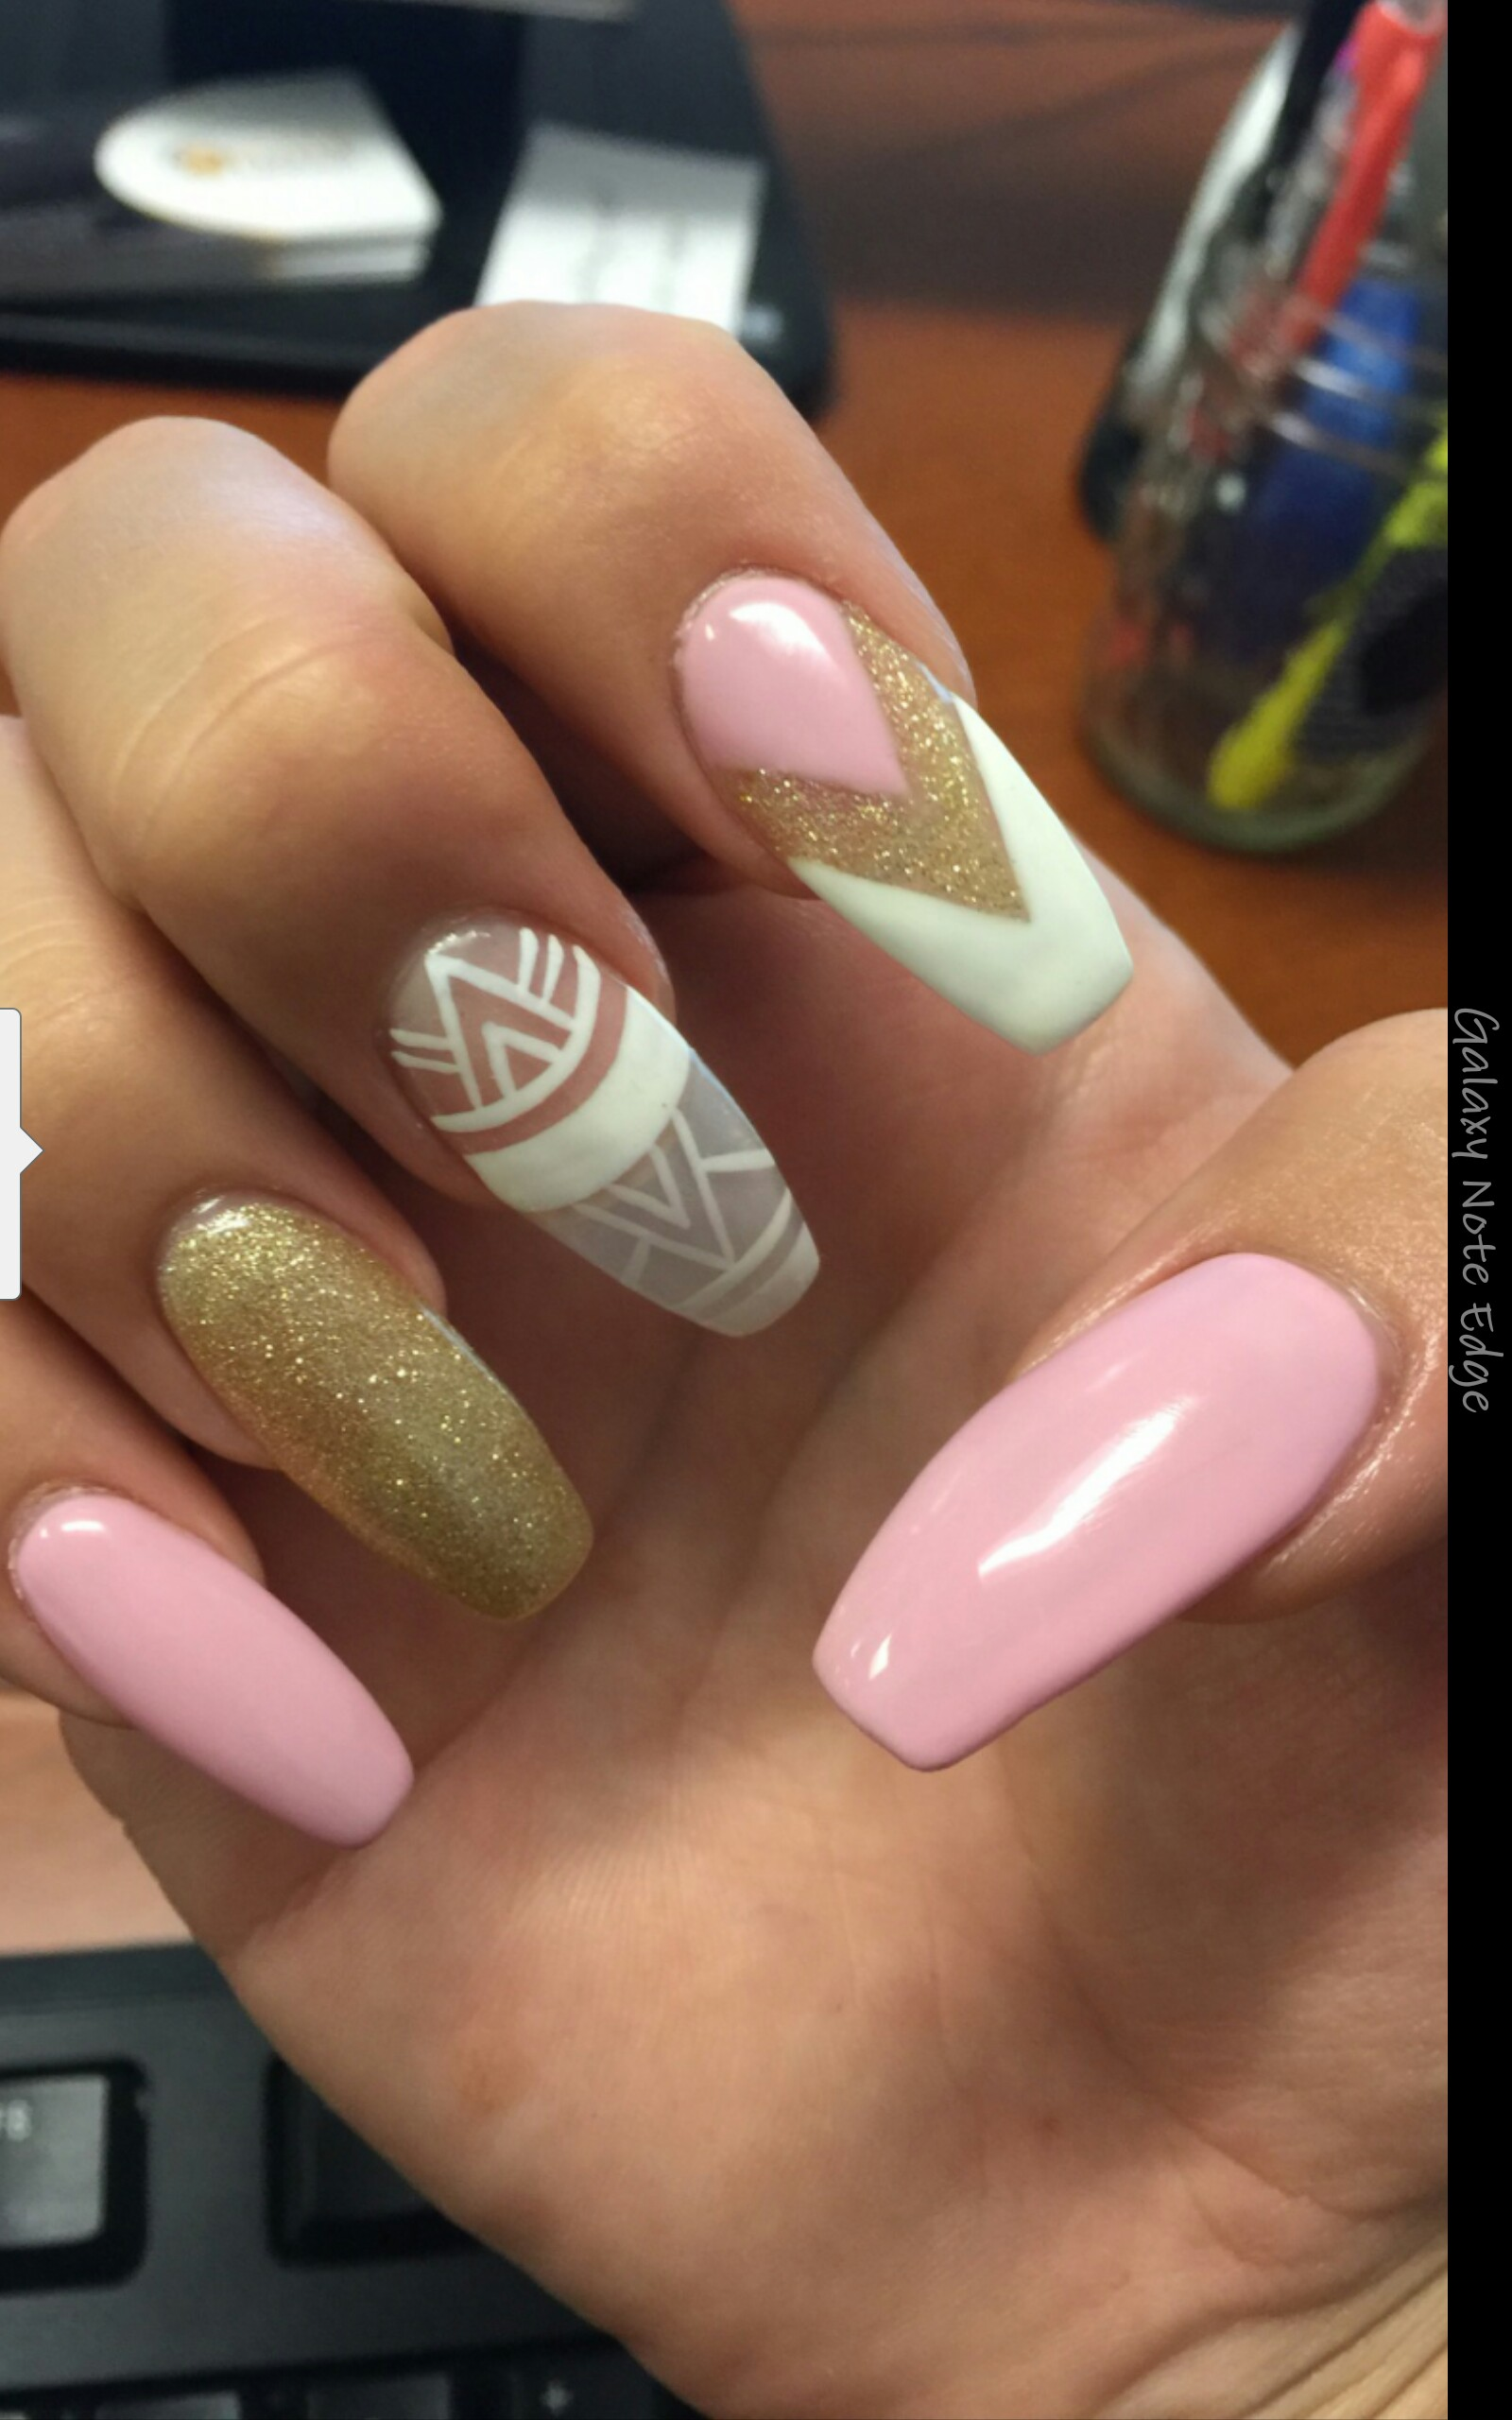 Top Nails 1255 Airport Way Ste 5a, Fairbanks, AK 99701 - YP.com